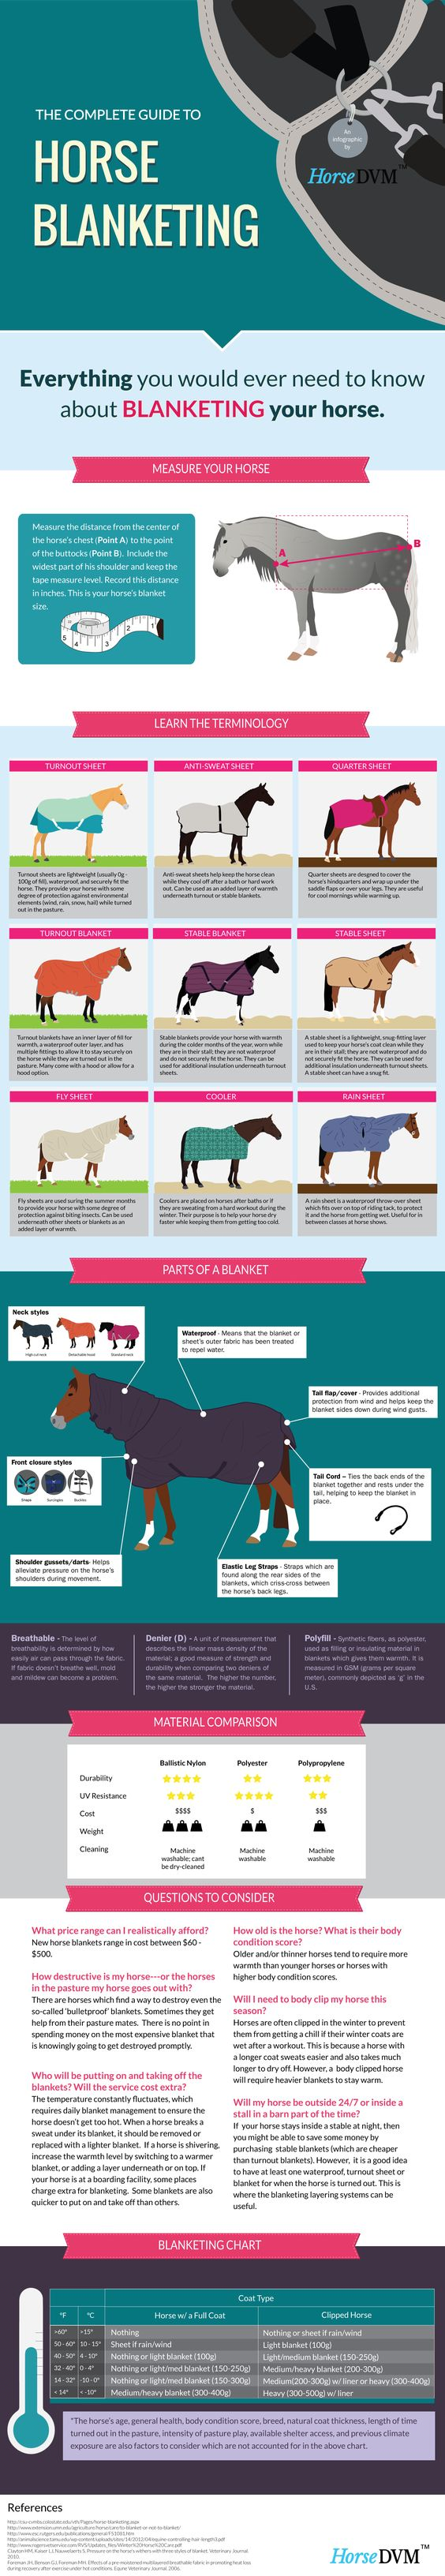 Learn about how to measure your horse for a blanket, whether to blanket them, parts of a blanket, horse blanketing terminology, a suggested blanketing chart, blanketing material comparison, and more!